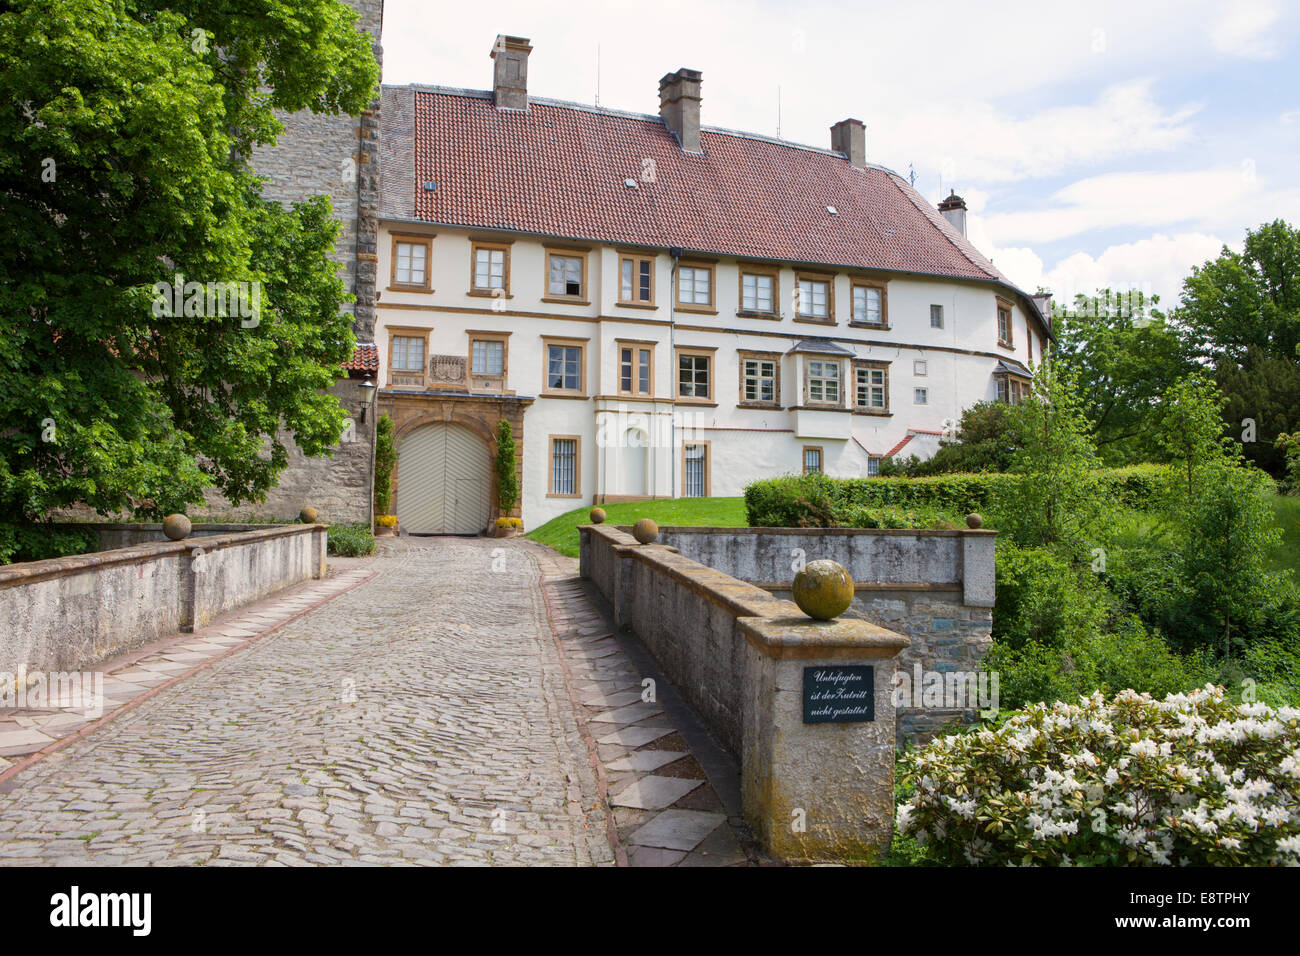 Castle Rheda, Rheda-Wiedenbrueck, North Rhine-Westphalia, Germany, Europe - Stock Image